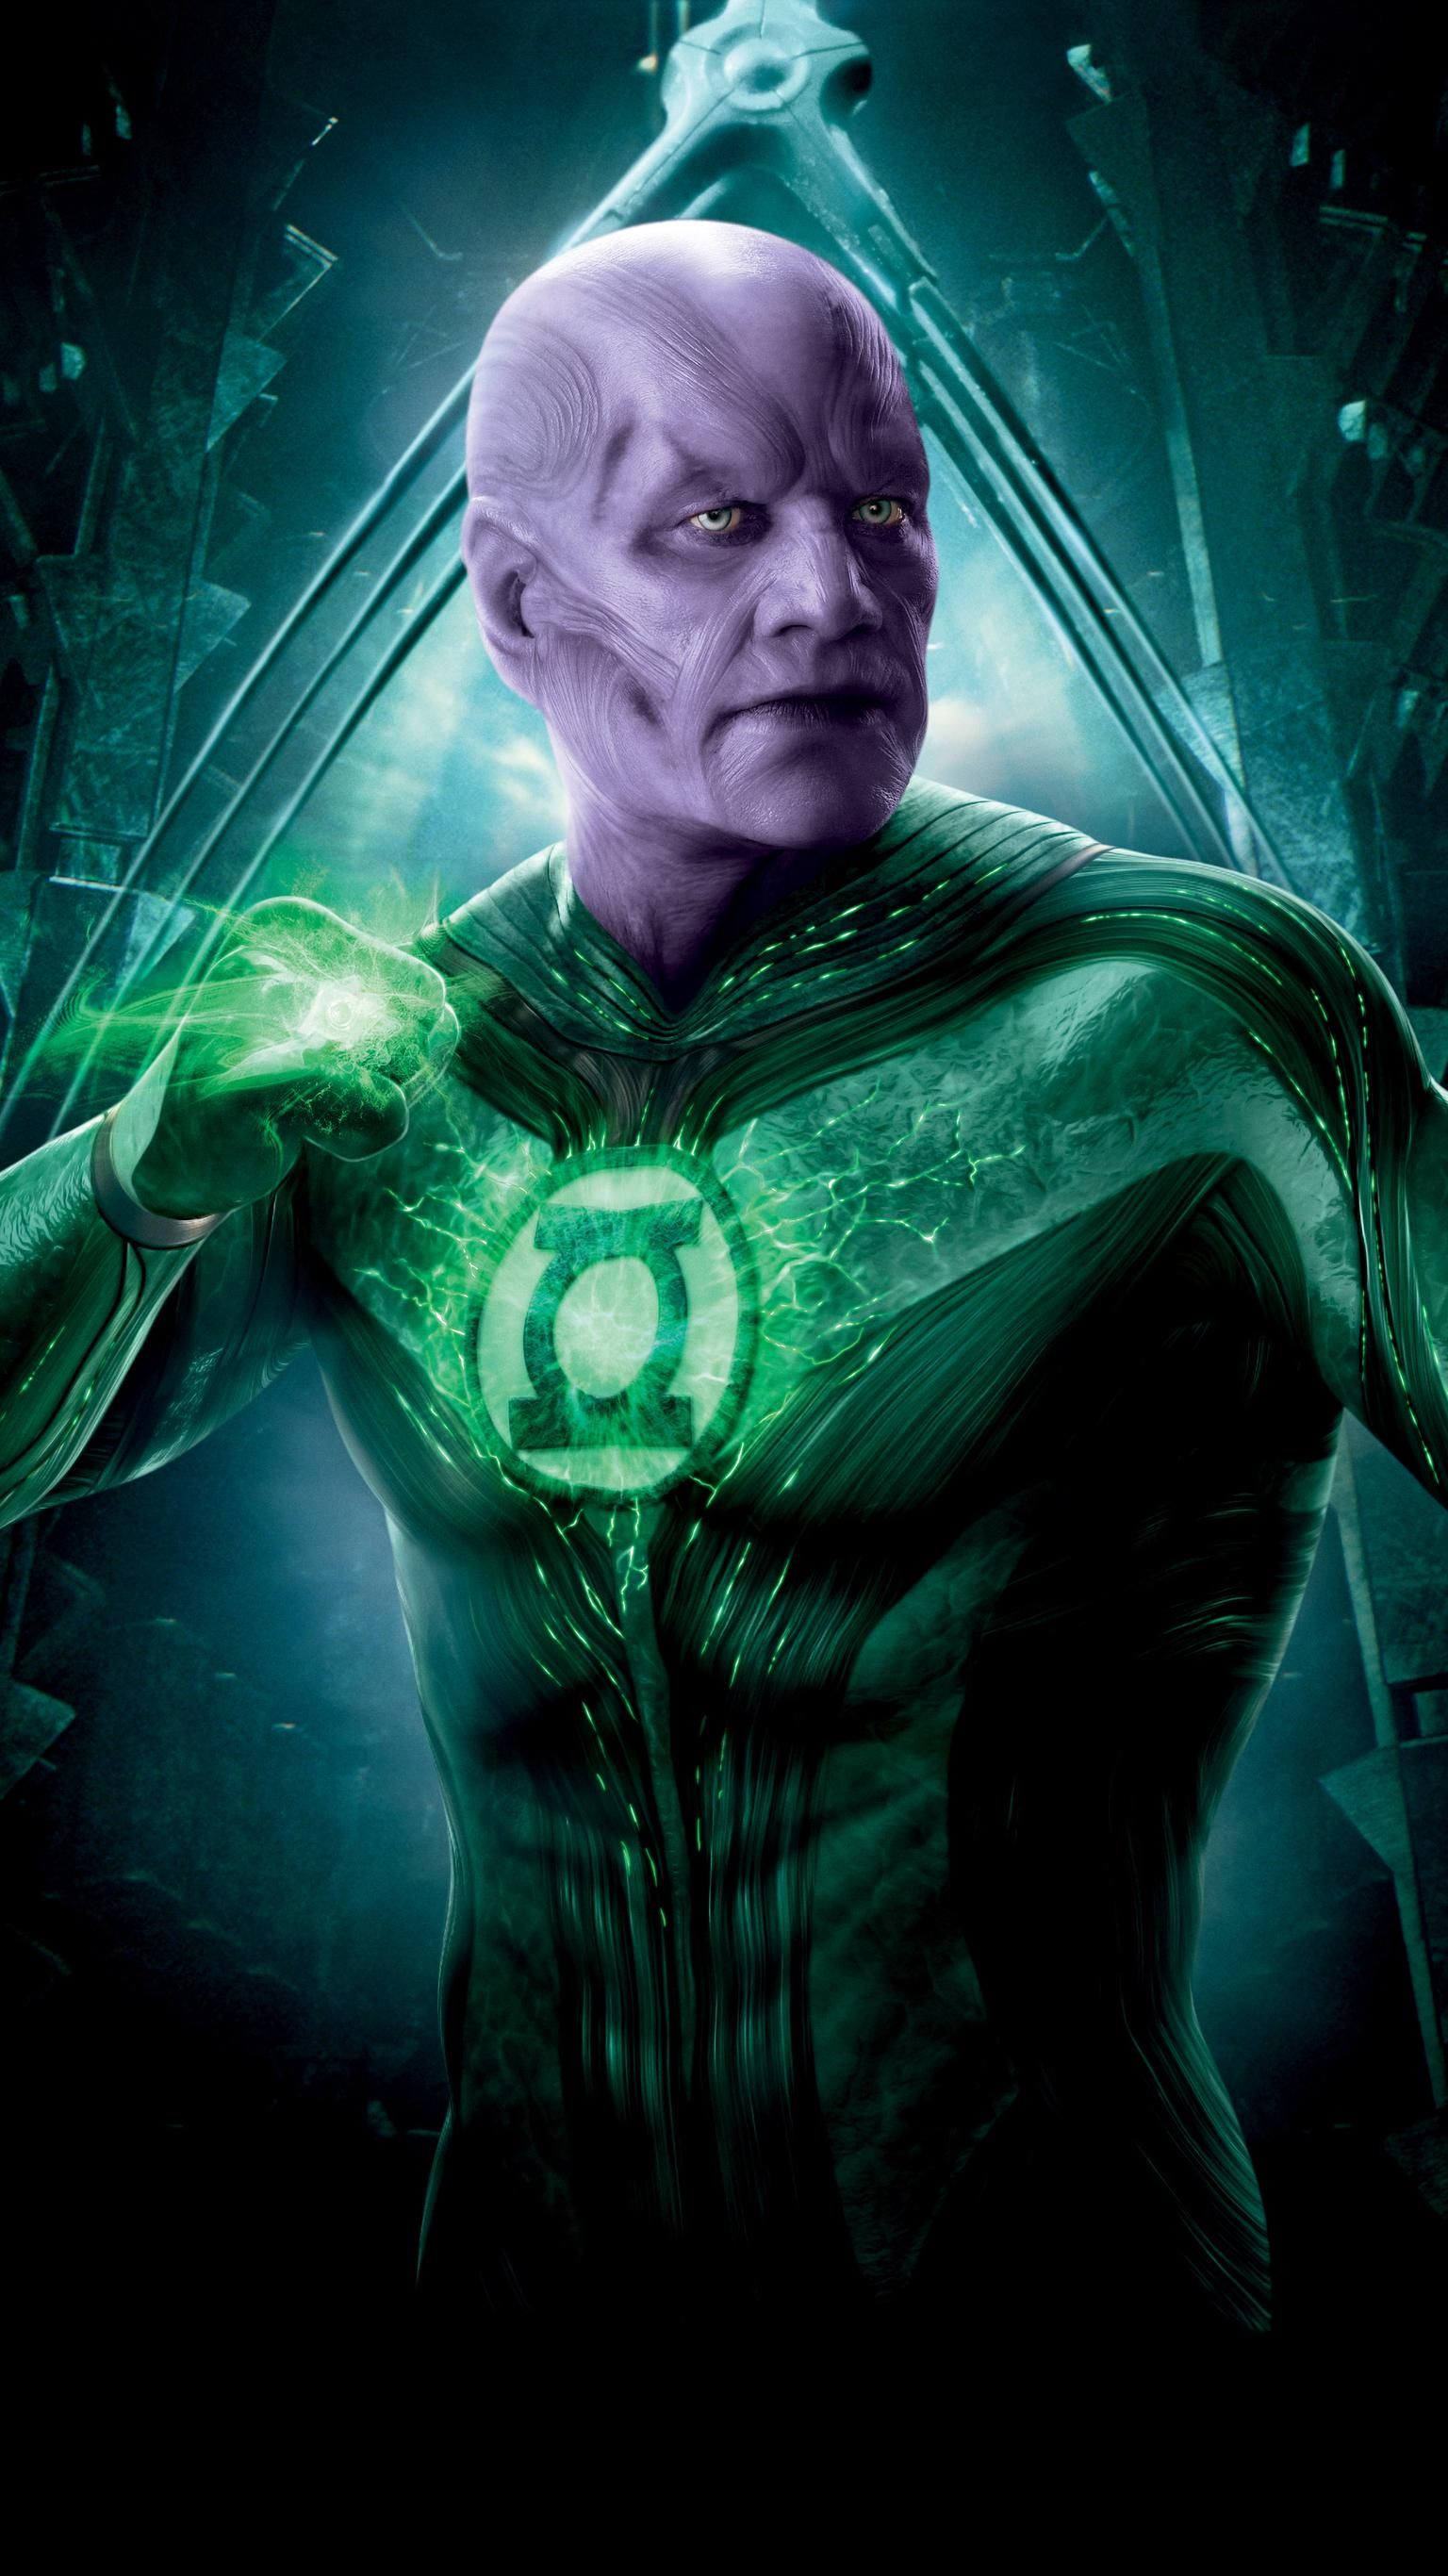 1536x2732 Green Lantern (2011) Phone Wallpaper | Moviemania